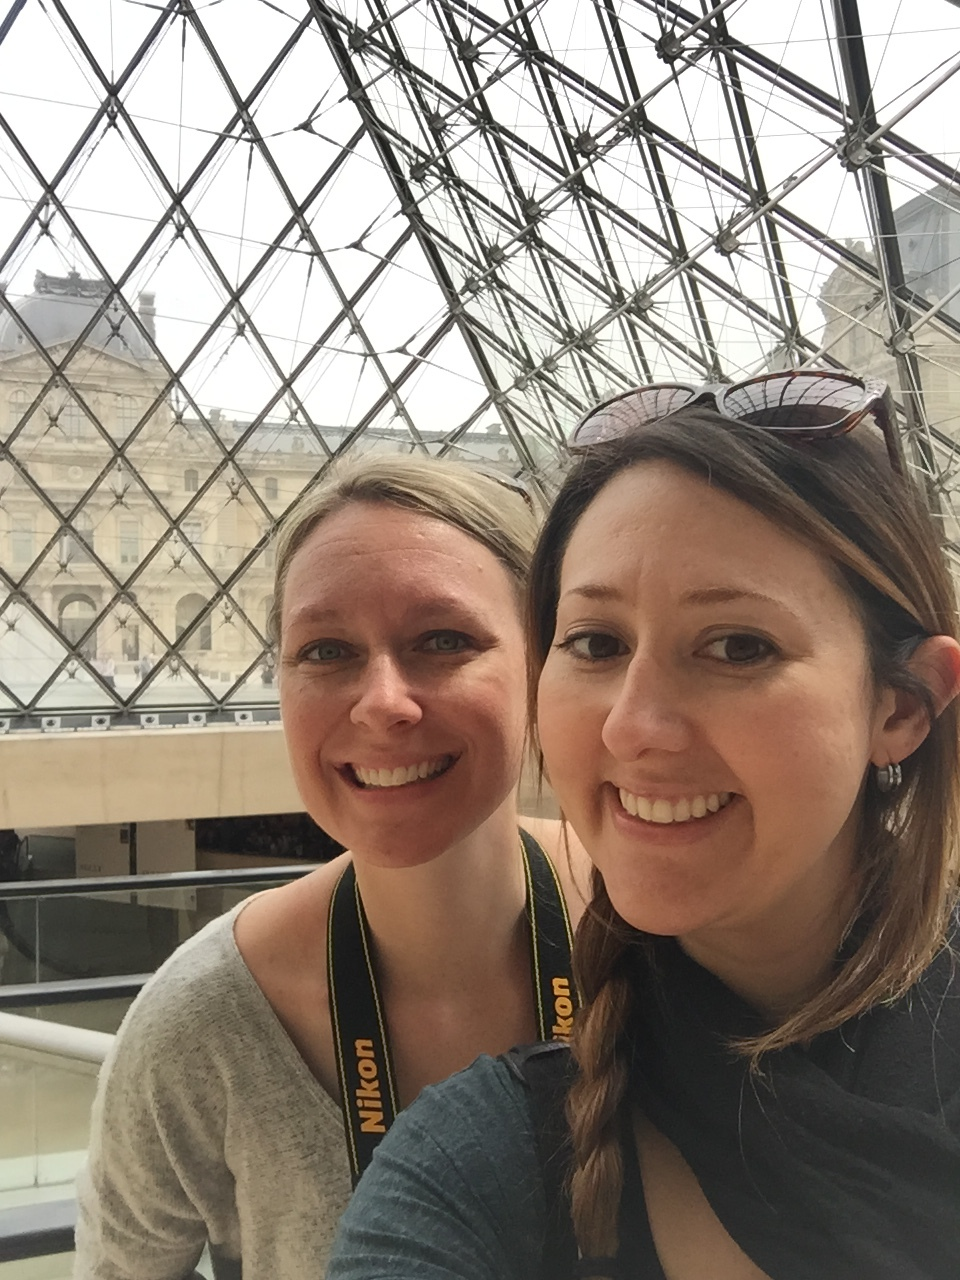 Visiting the Louvre - PARIS WAITS FOR YOU!